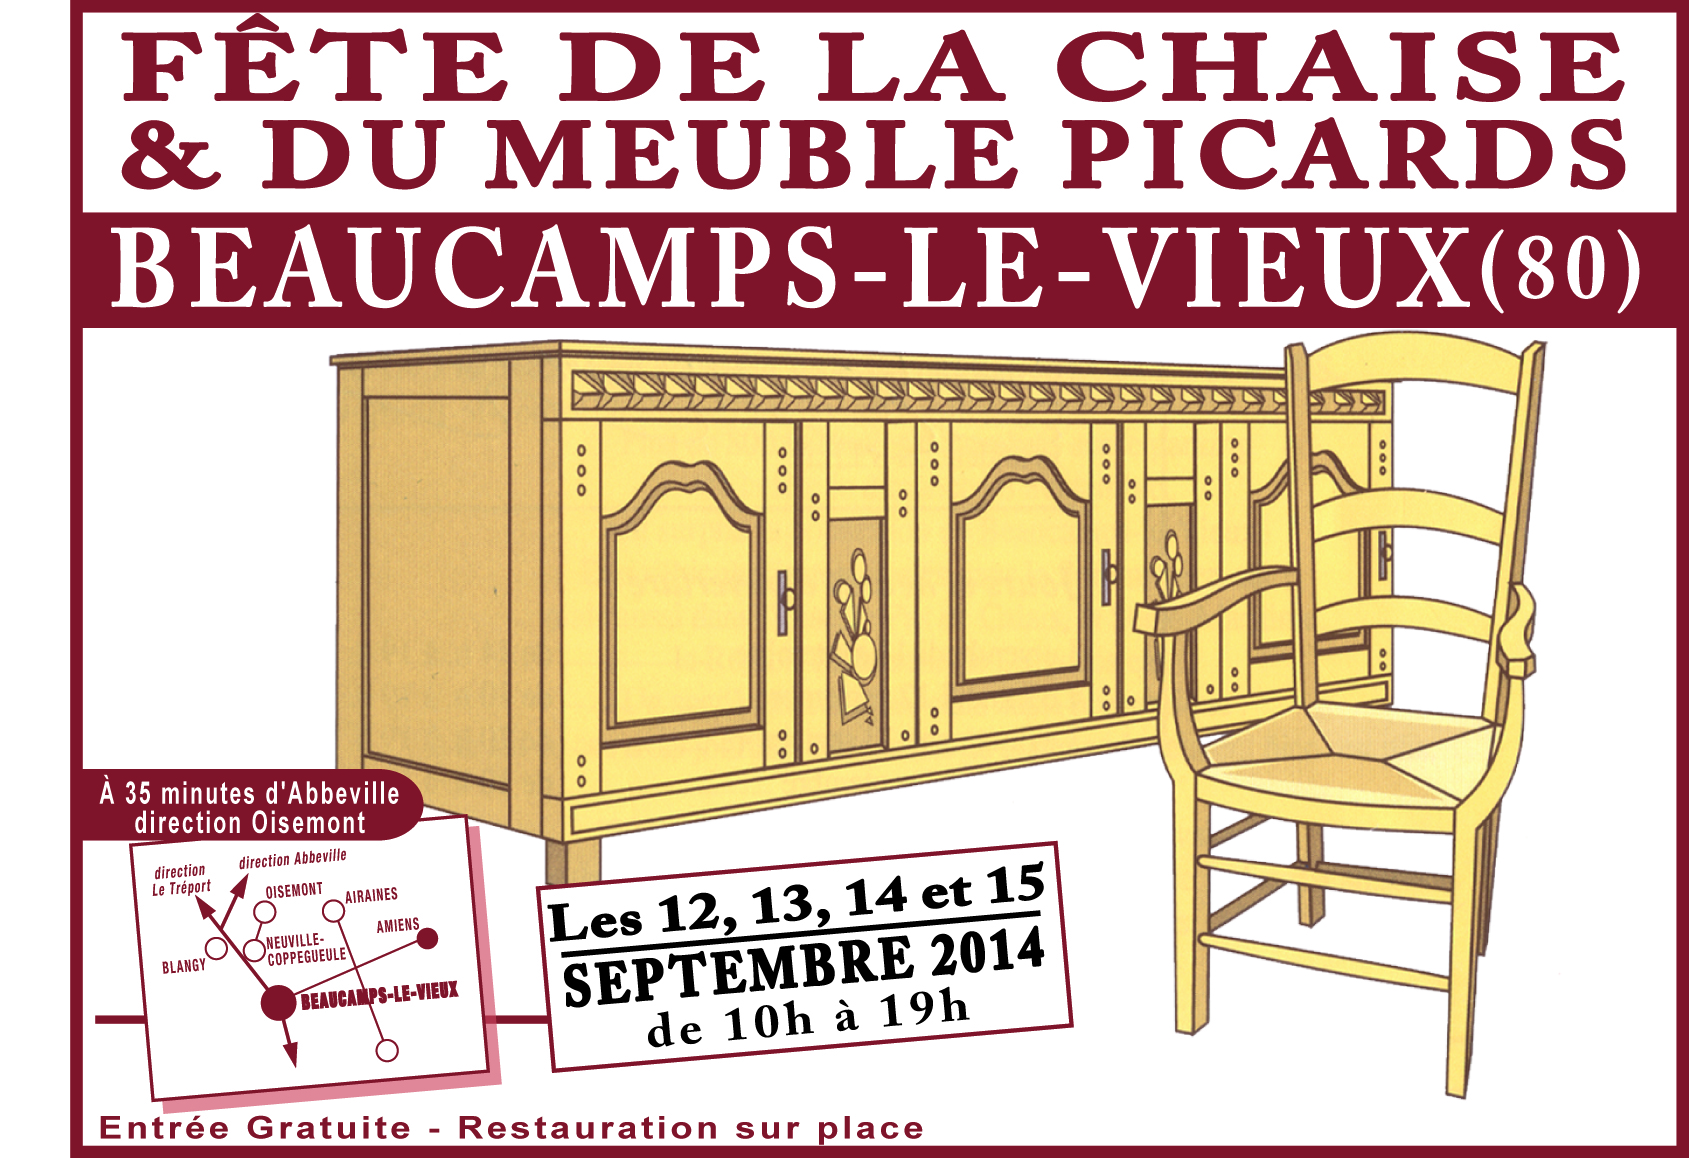 Fete de la chaise beaucamp le vieux 2016 conception for La grange du meuble